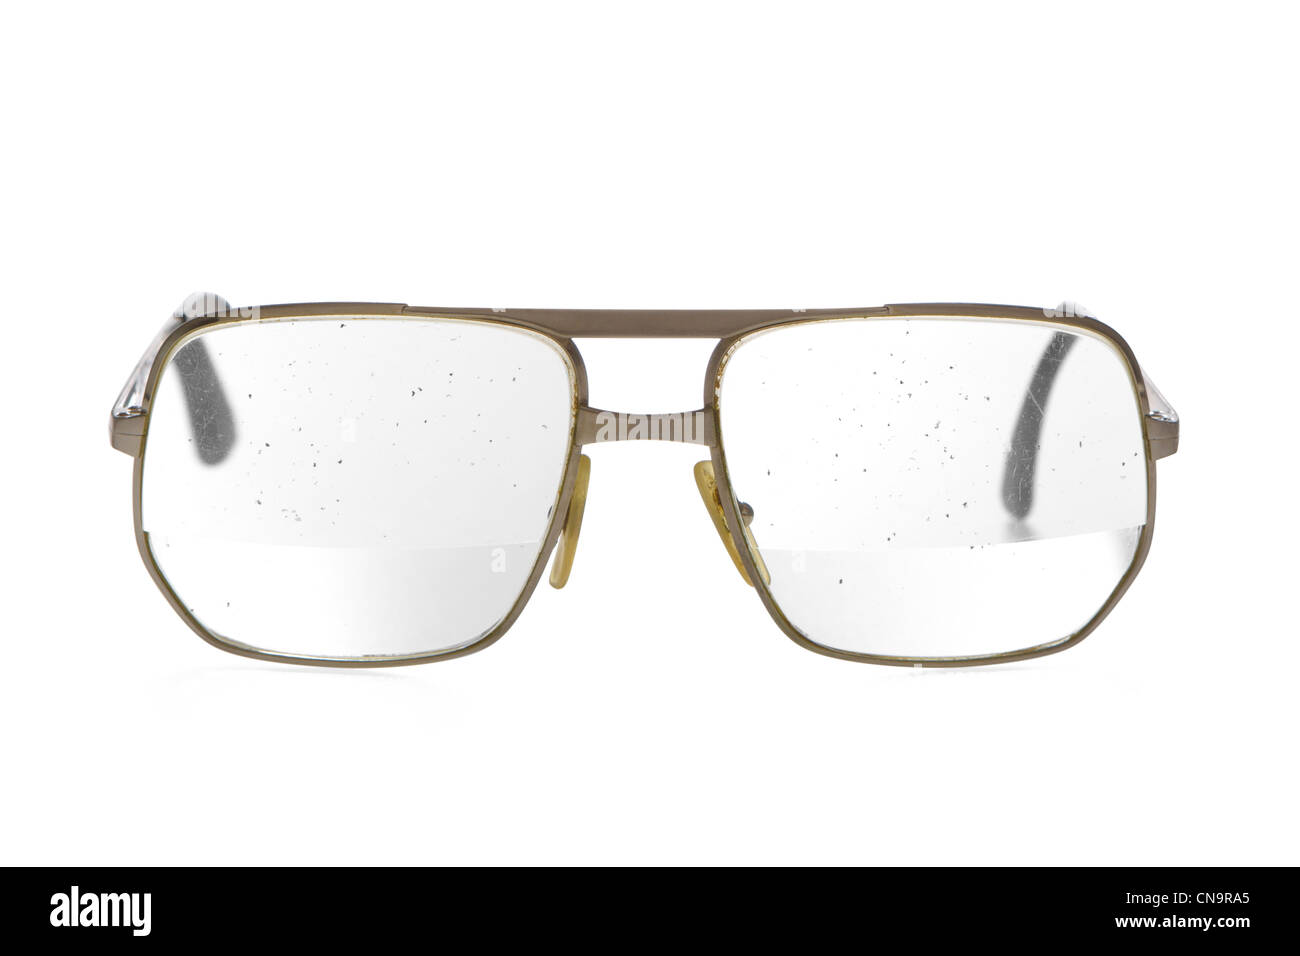 Very old, dirty, beat-up eyeglasses with thick bifocal lens in gold ...